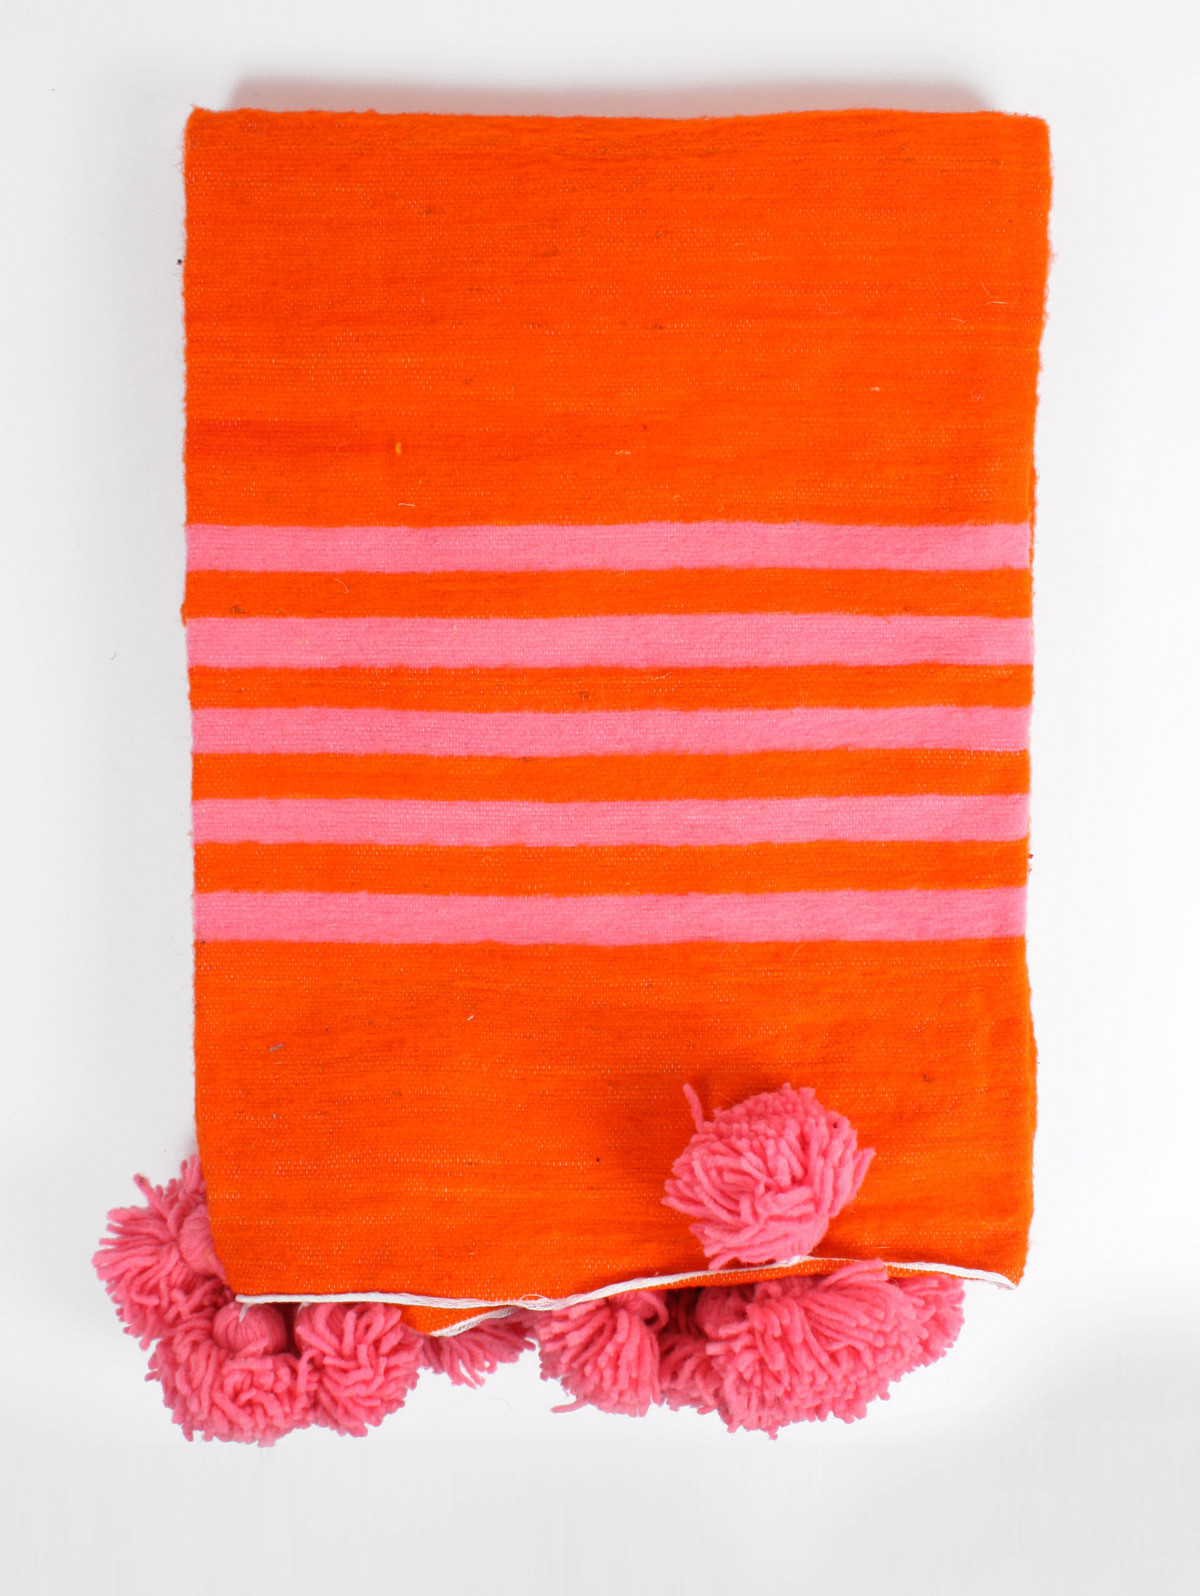 Bohemia-Wool-Stripe-Bobble-Blanket-Orange.jpg